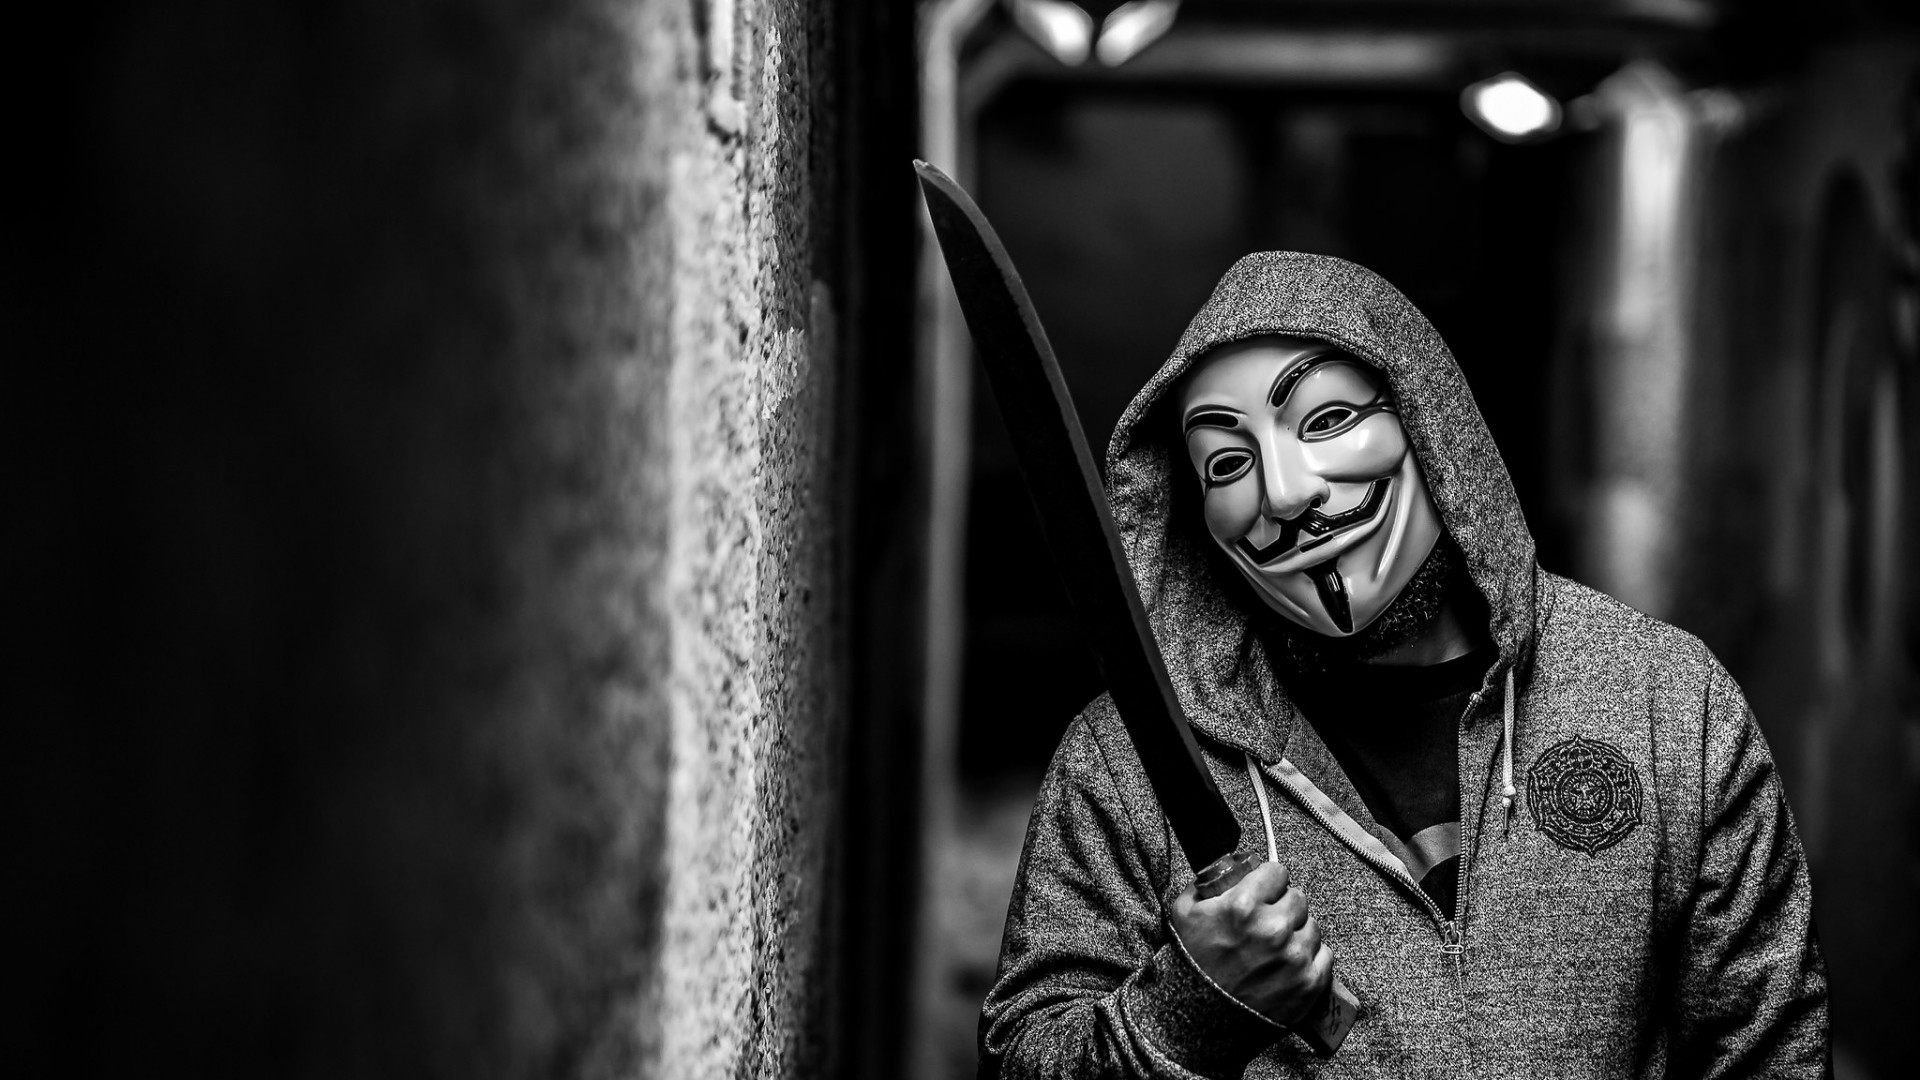 Preview wallpaper anonymous, guy fawkes mask, mask, machete 1920×1080